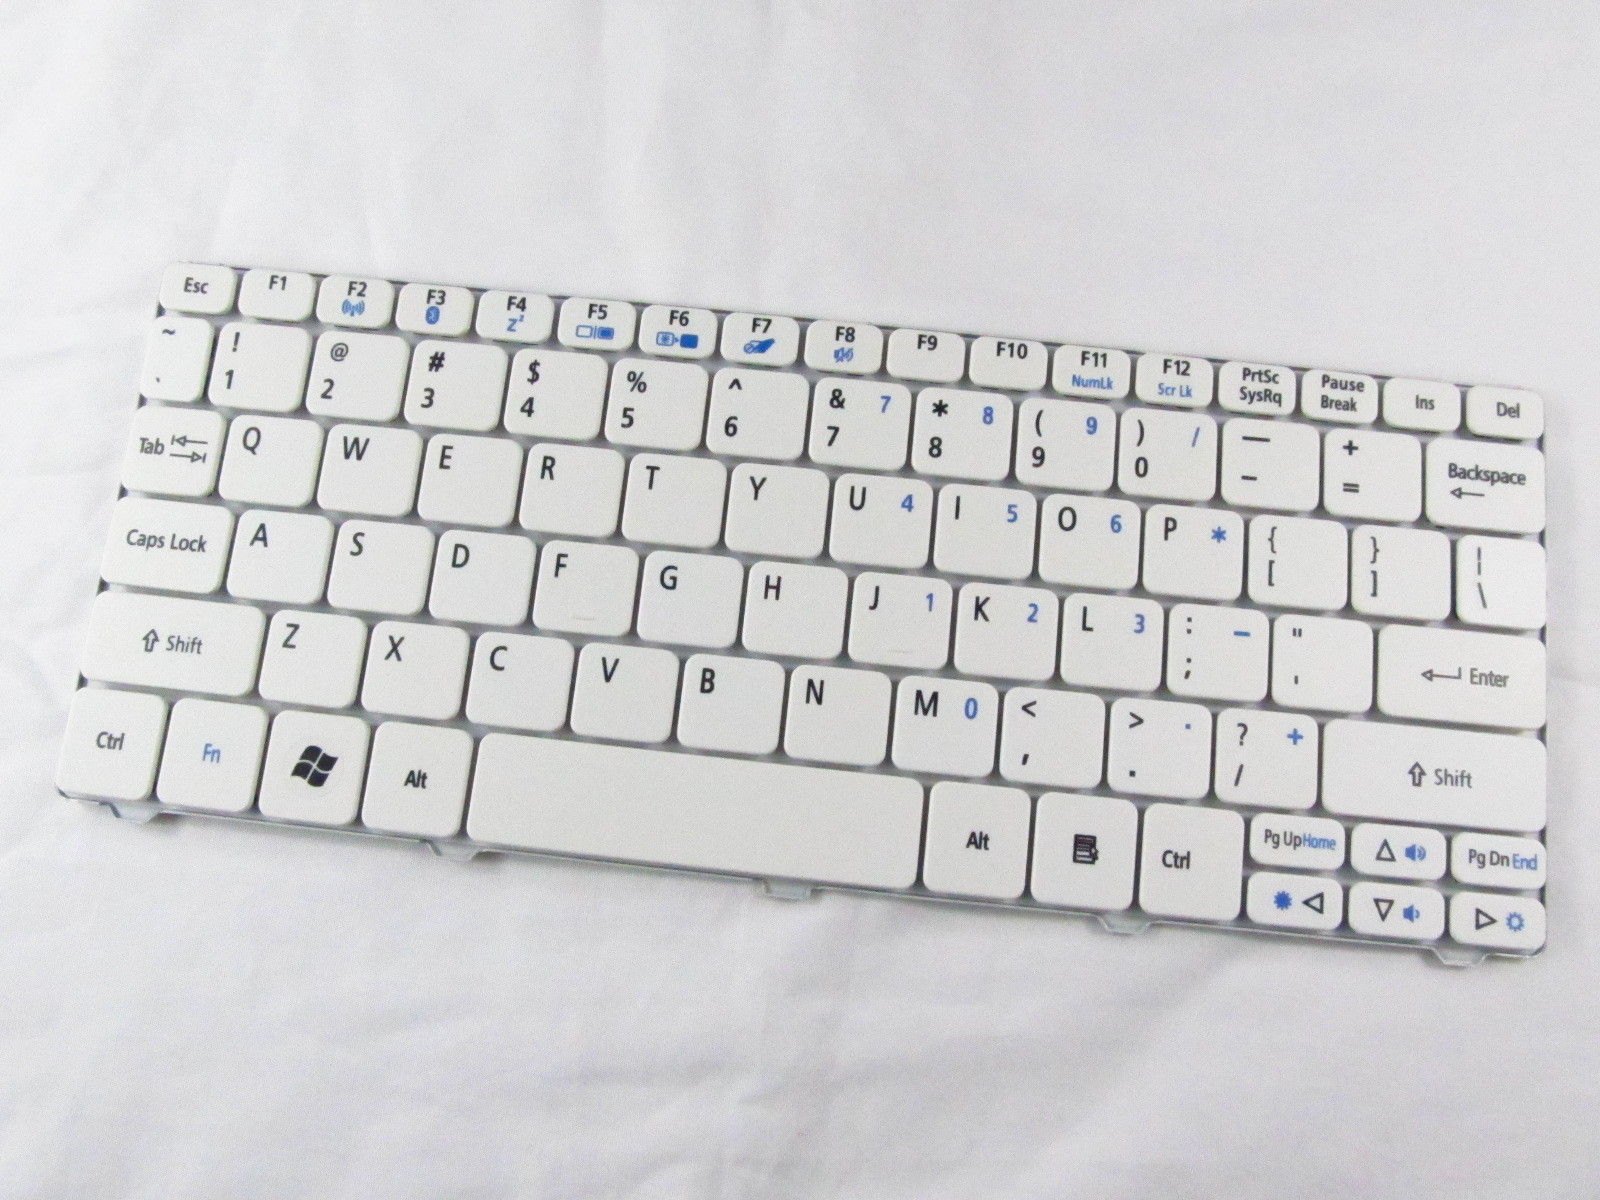 New GENUINE for Acer Aspire One 521 533 D255 D260 Keyboard white US